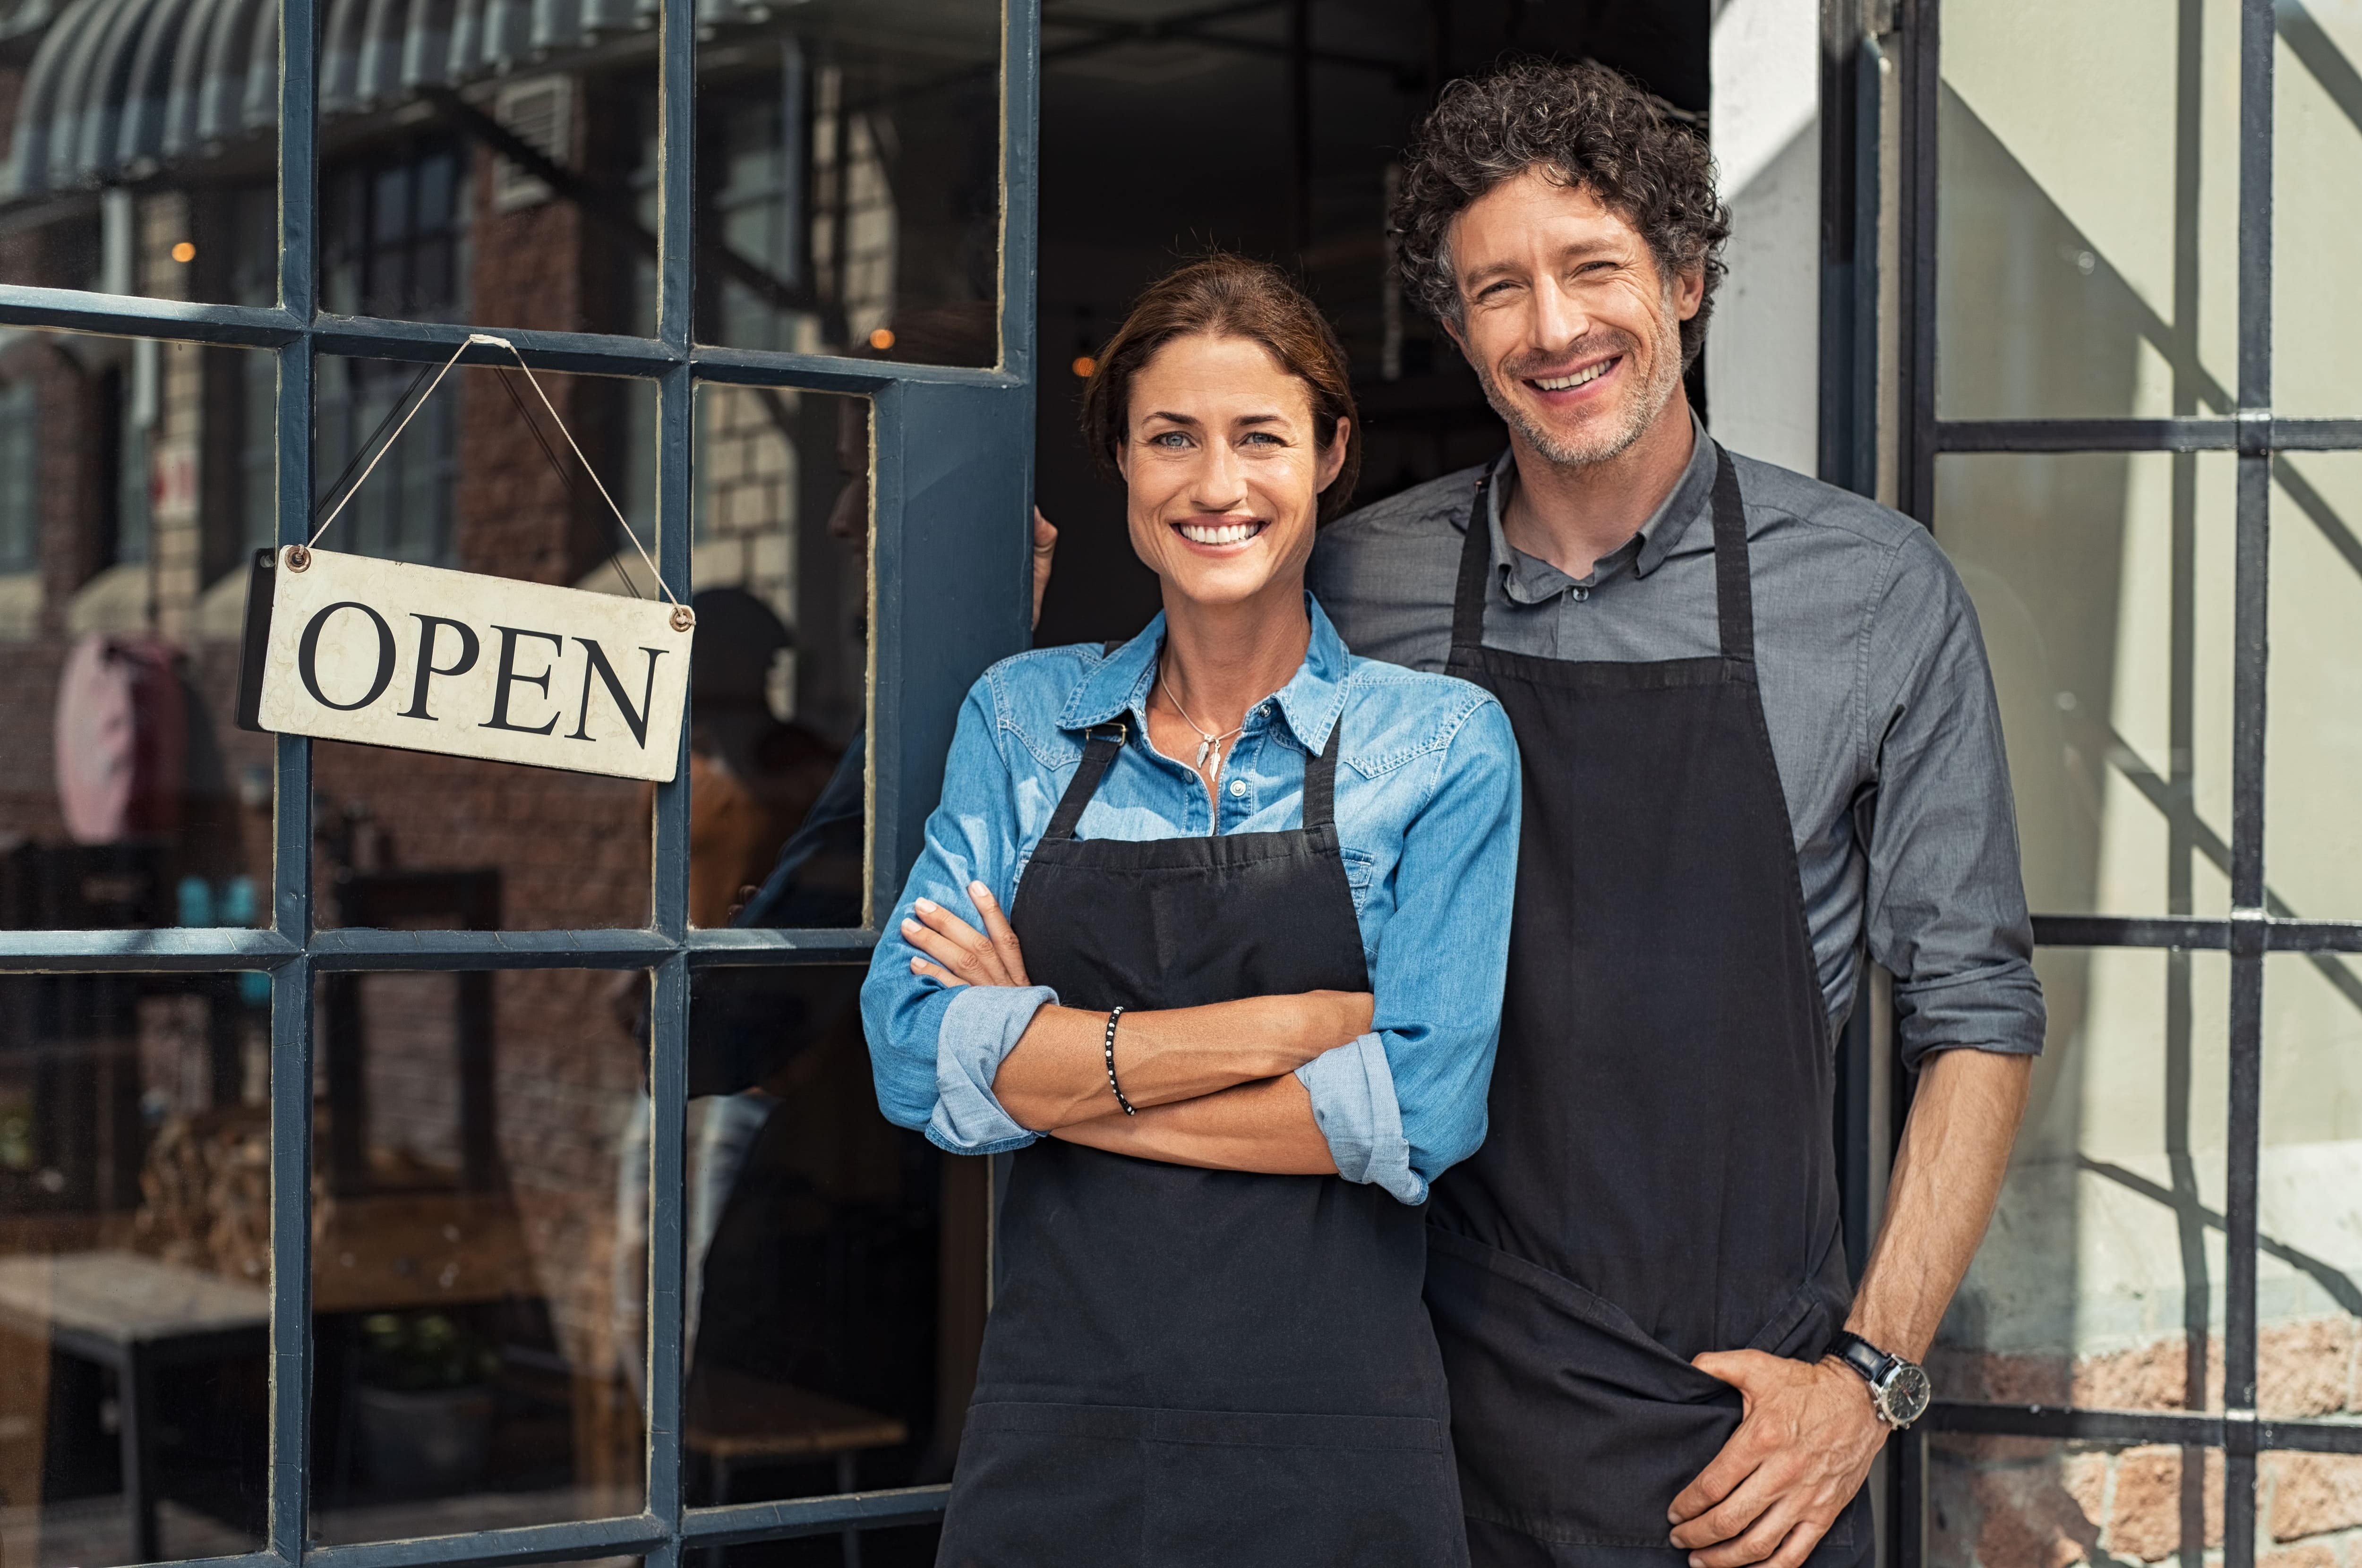 Celebrate Mom and Pop Small Business Owner Day